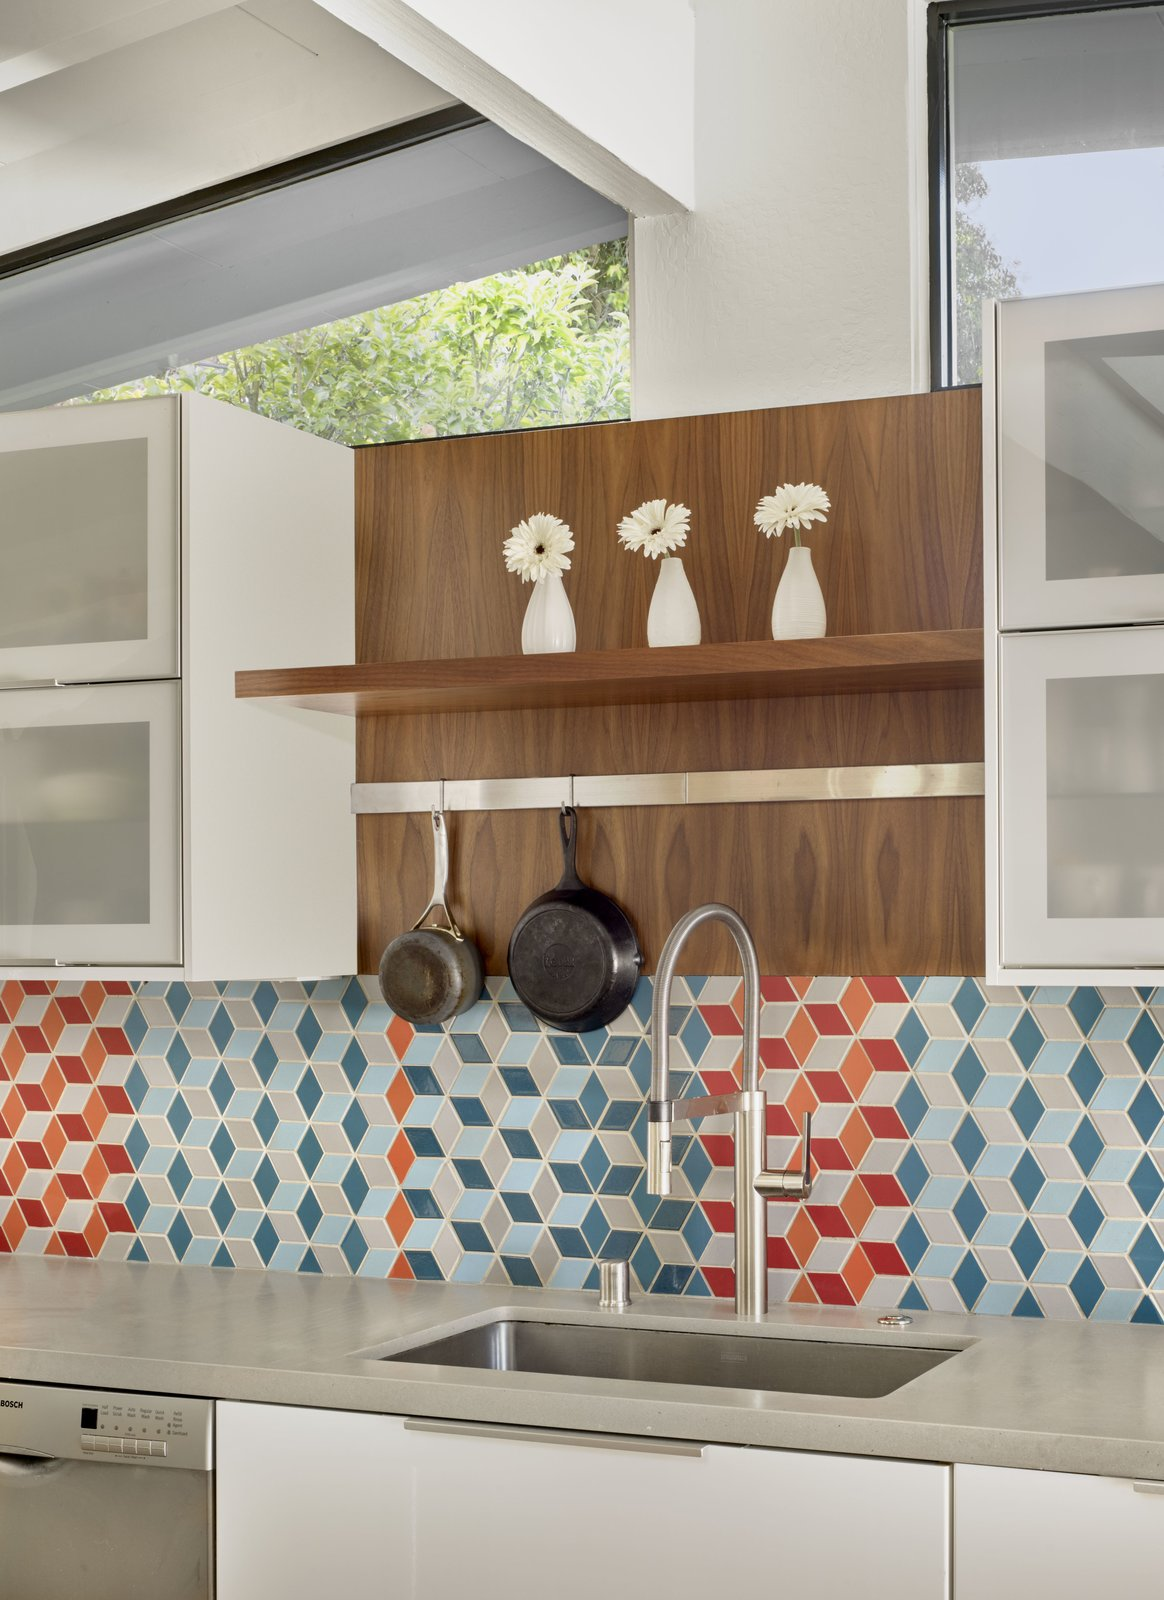 The kitchen features crisp, white cabinets, colorful mosaic tiles, and walnut accents.